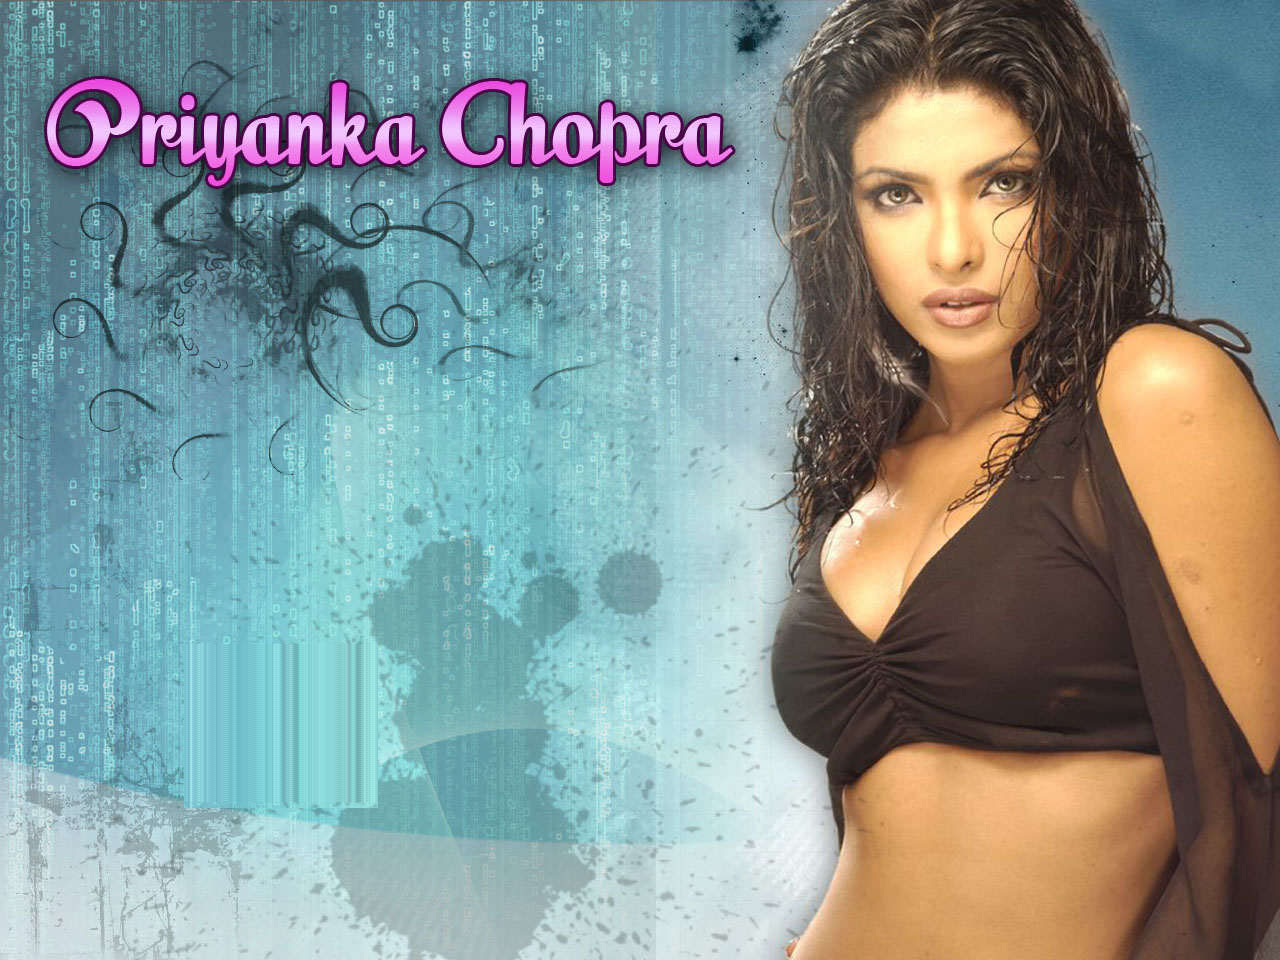 http://4.bp.blogspot.com/--E79AcujmiY/UP_pmmjEyJI/AAAAAAAAFjE/y5jpIpRl1BE/s1600/priyanka-chopra-wallpapers+%25286%2529.jpg